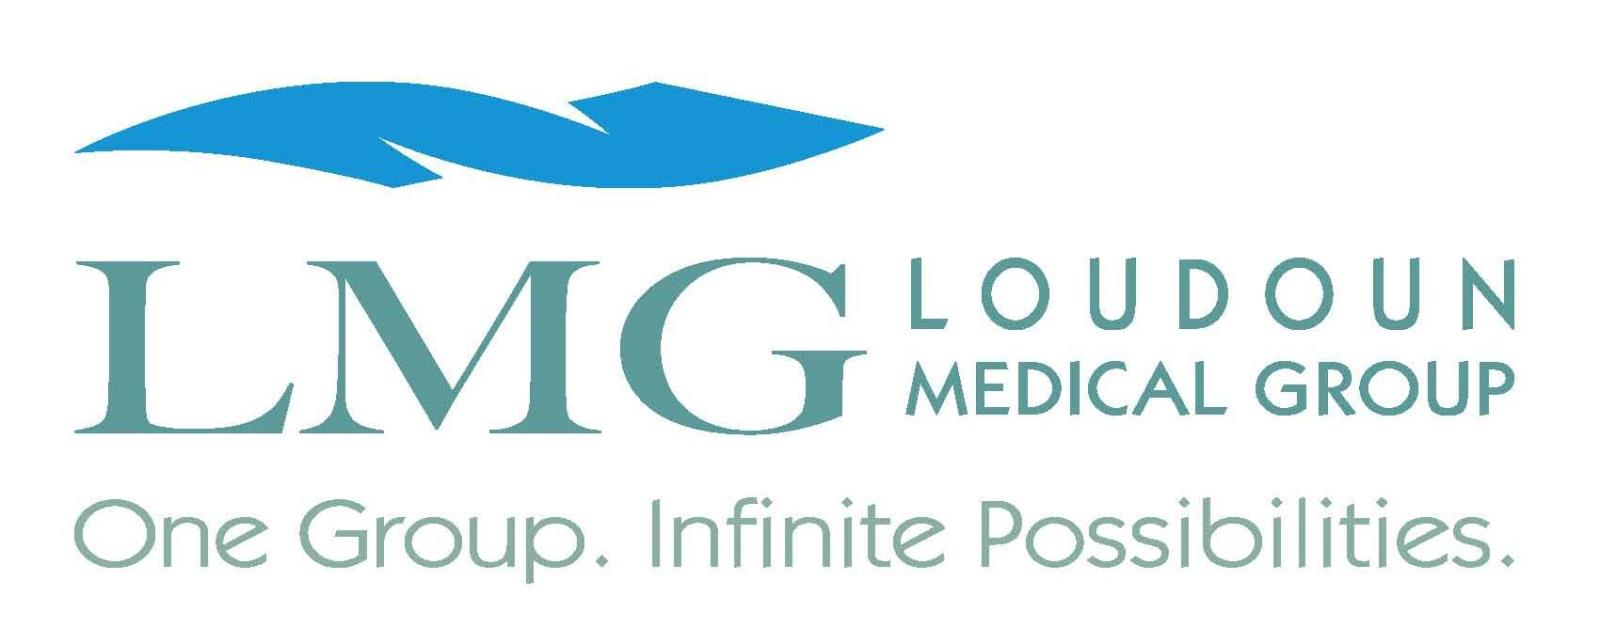 LMG Logo JPEG Large